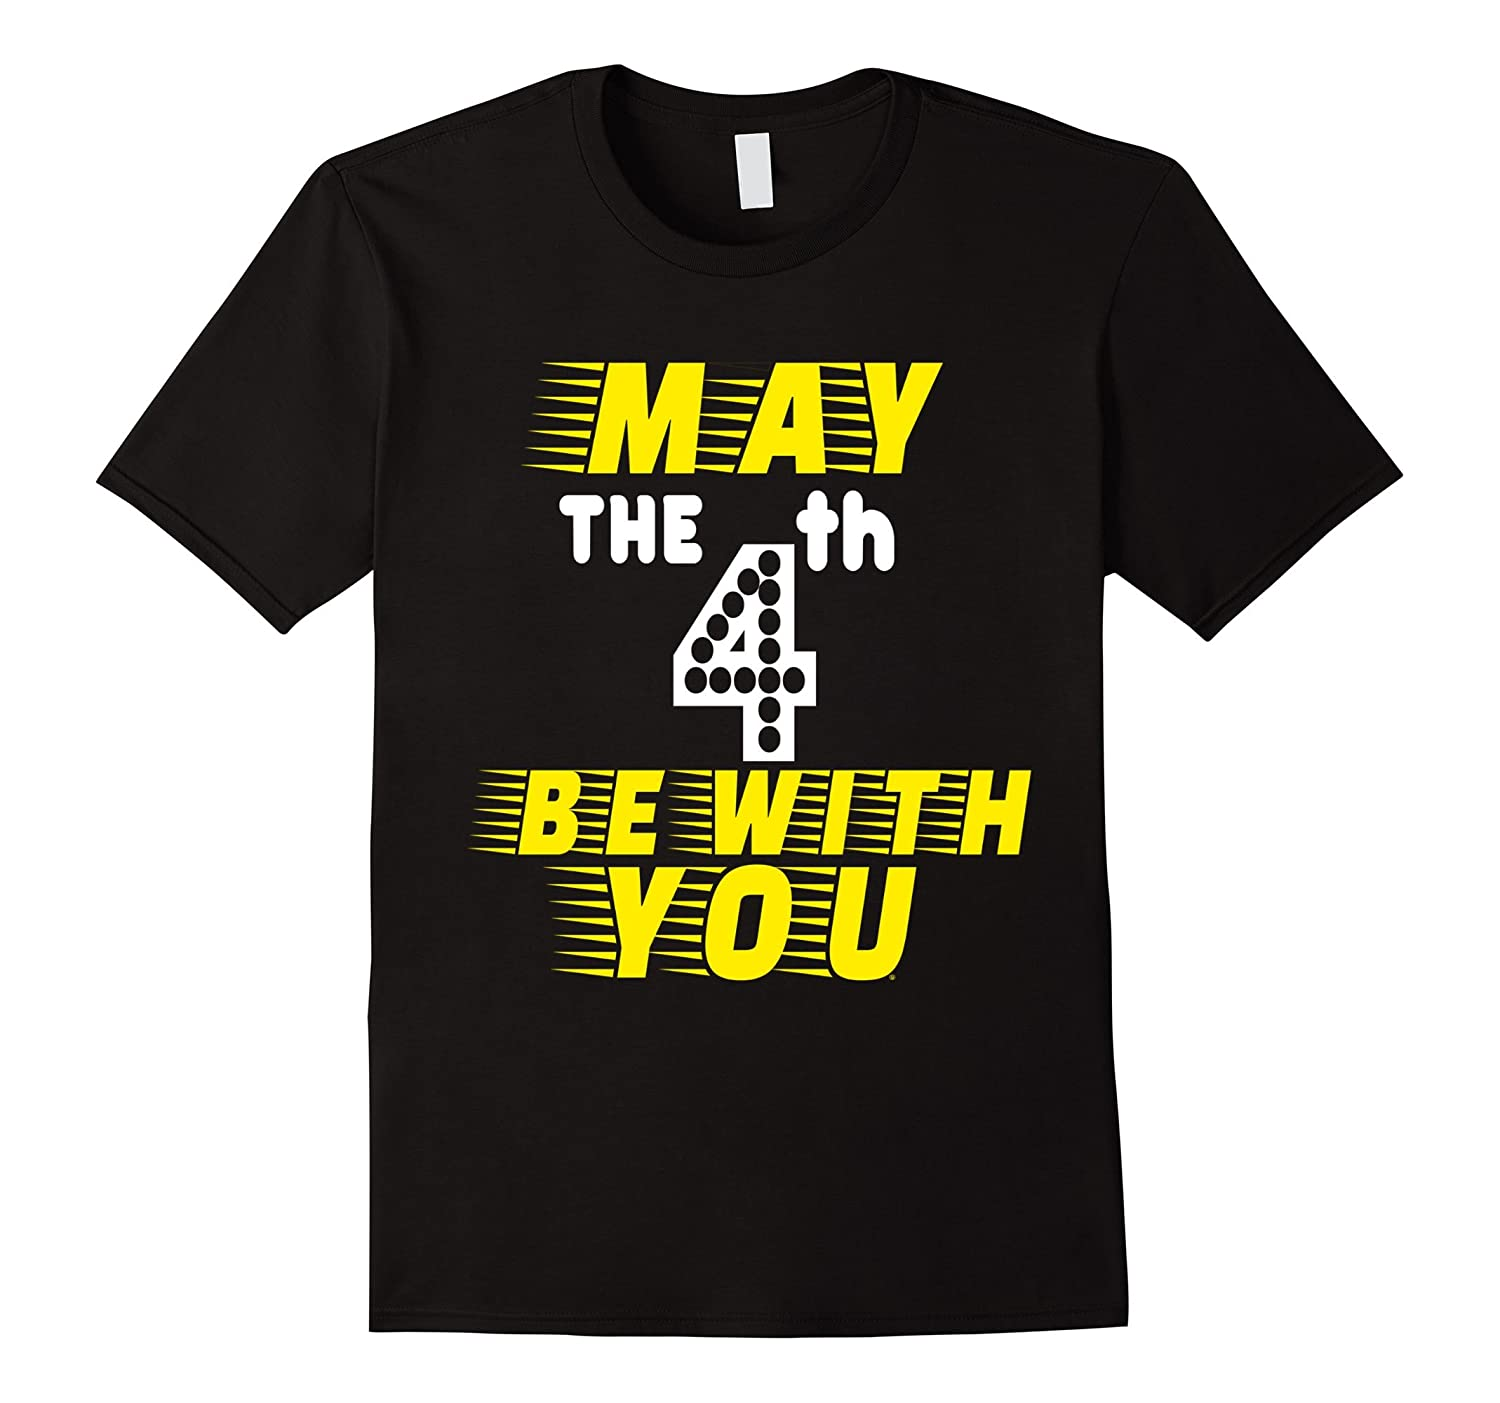 May The 4th Be With You Merchandise: May The 4th Be With You Funny T-Shirt